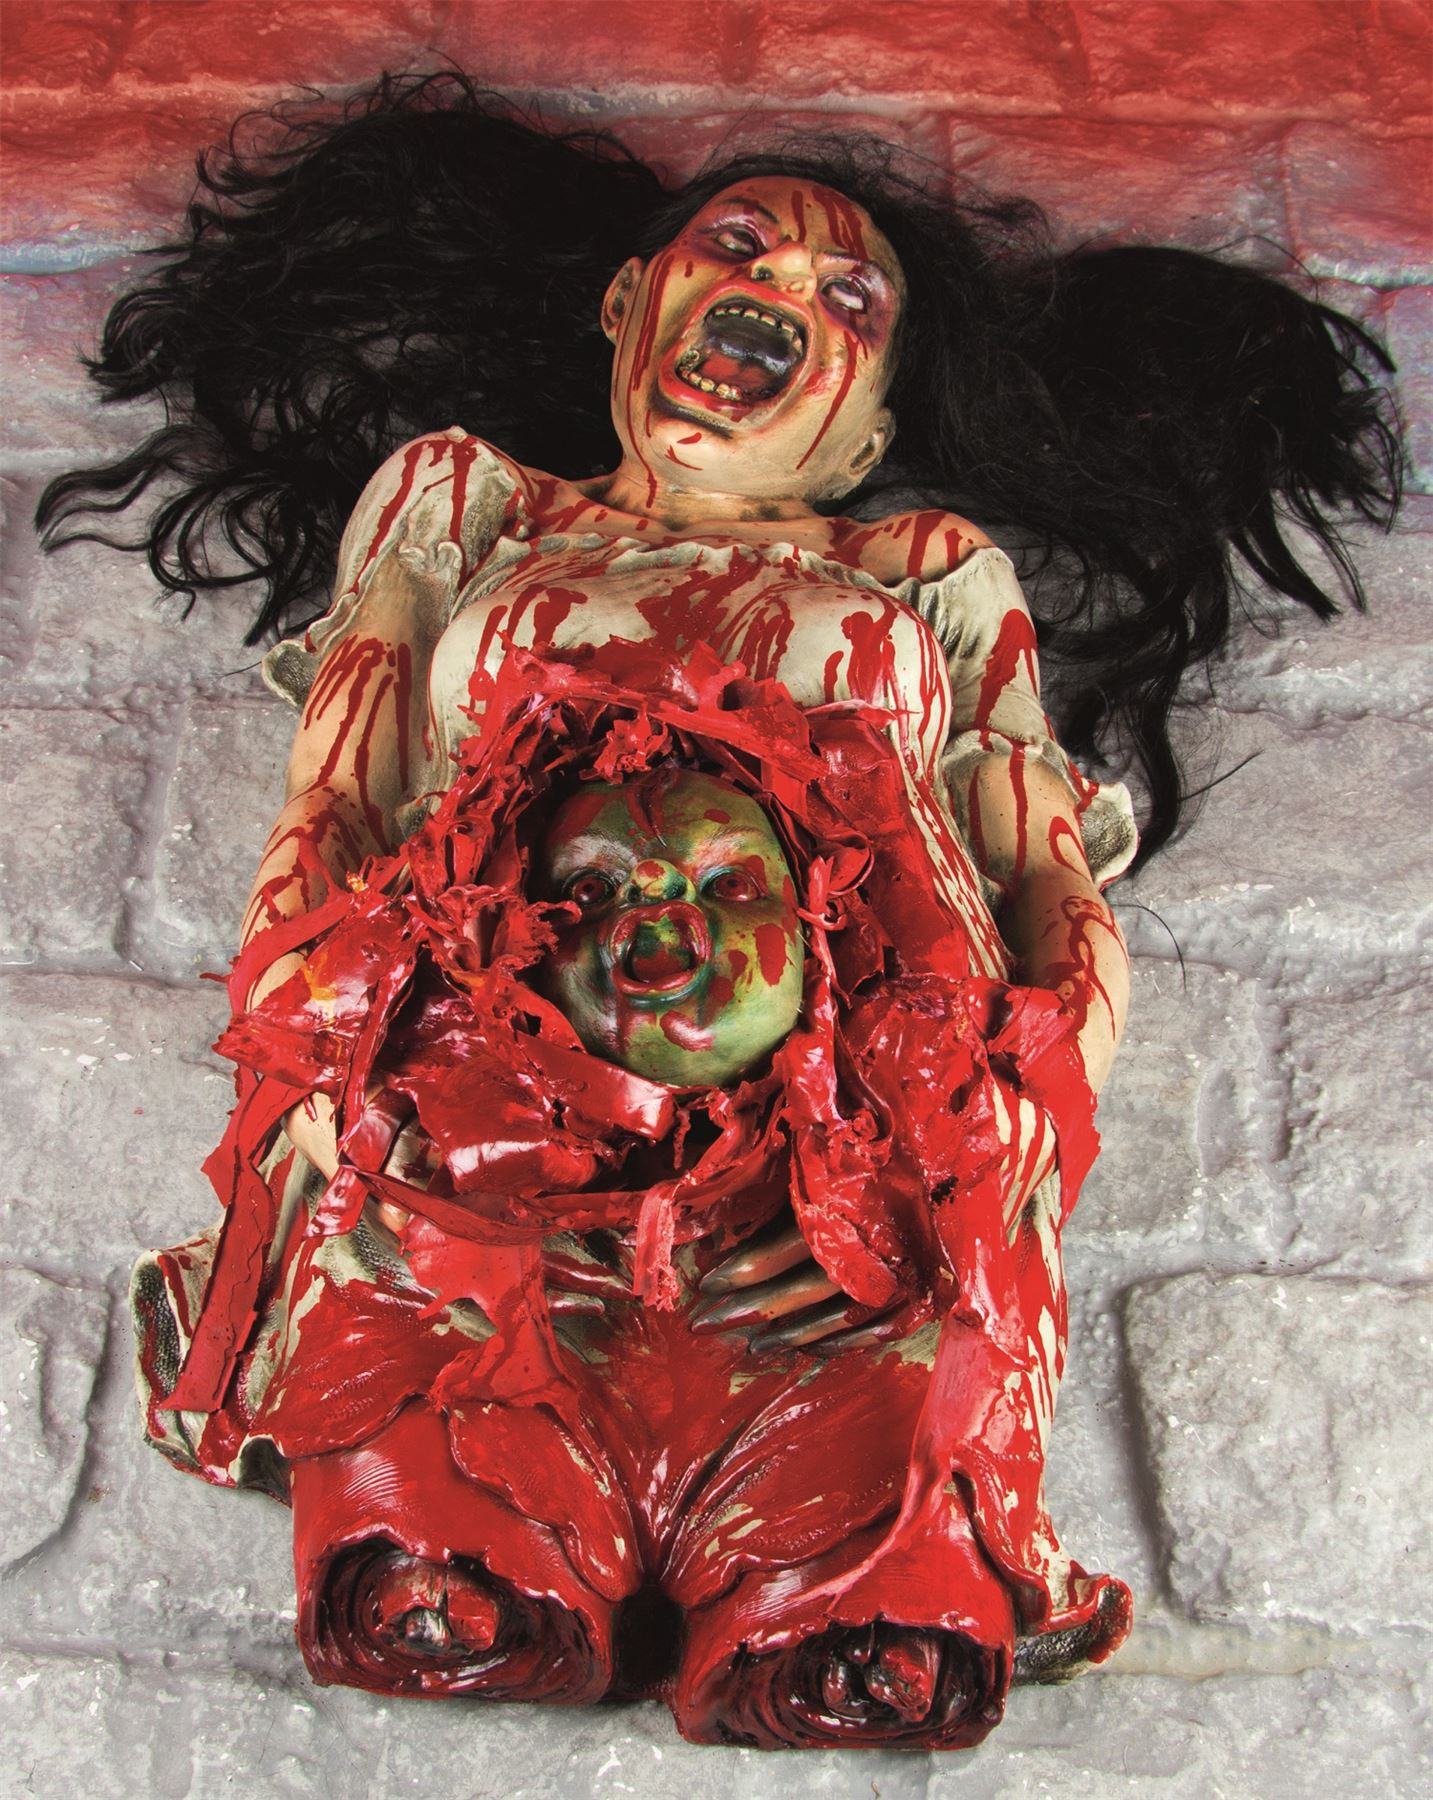 halloween gory horror pregnant woman corpse zombie baby